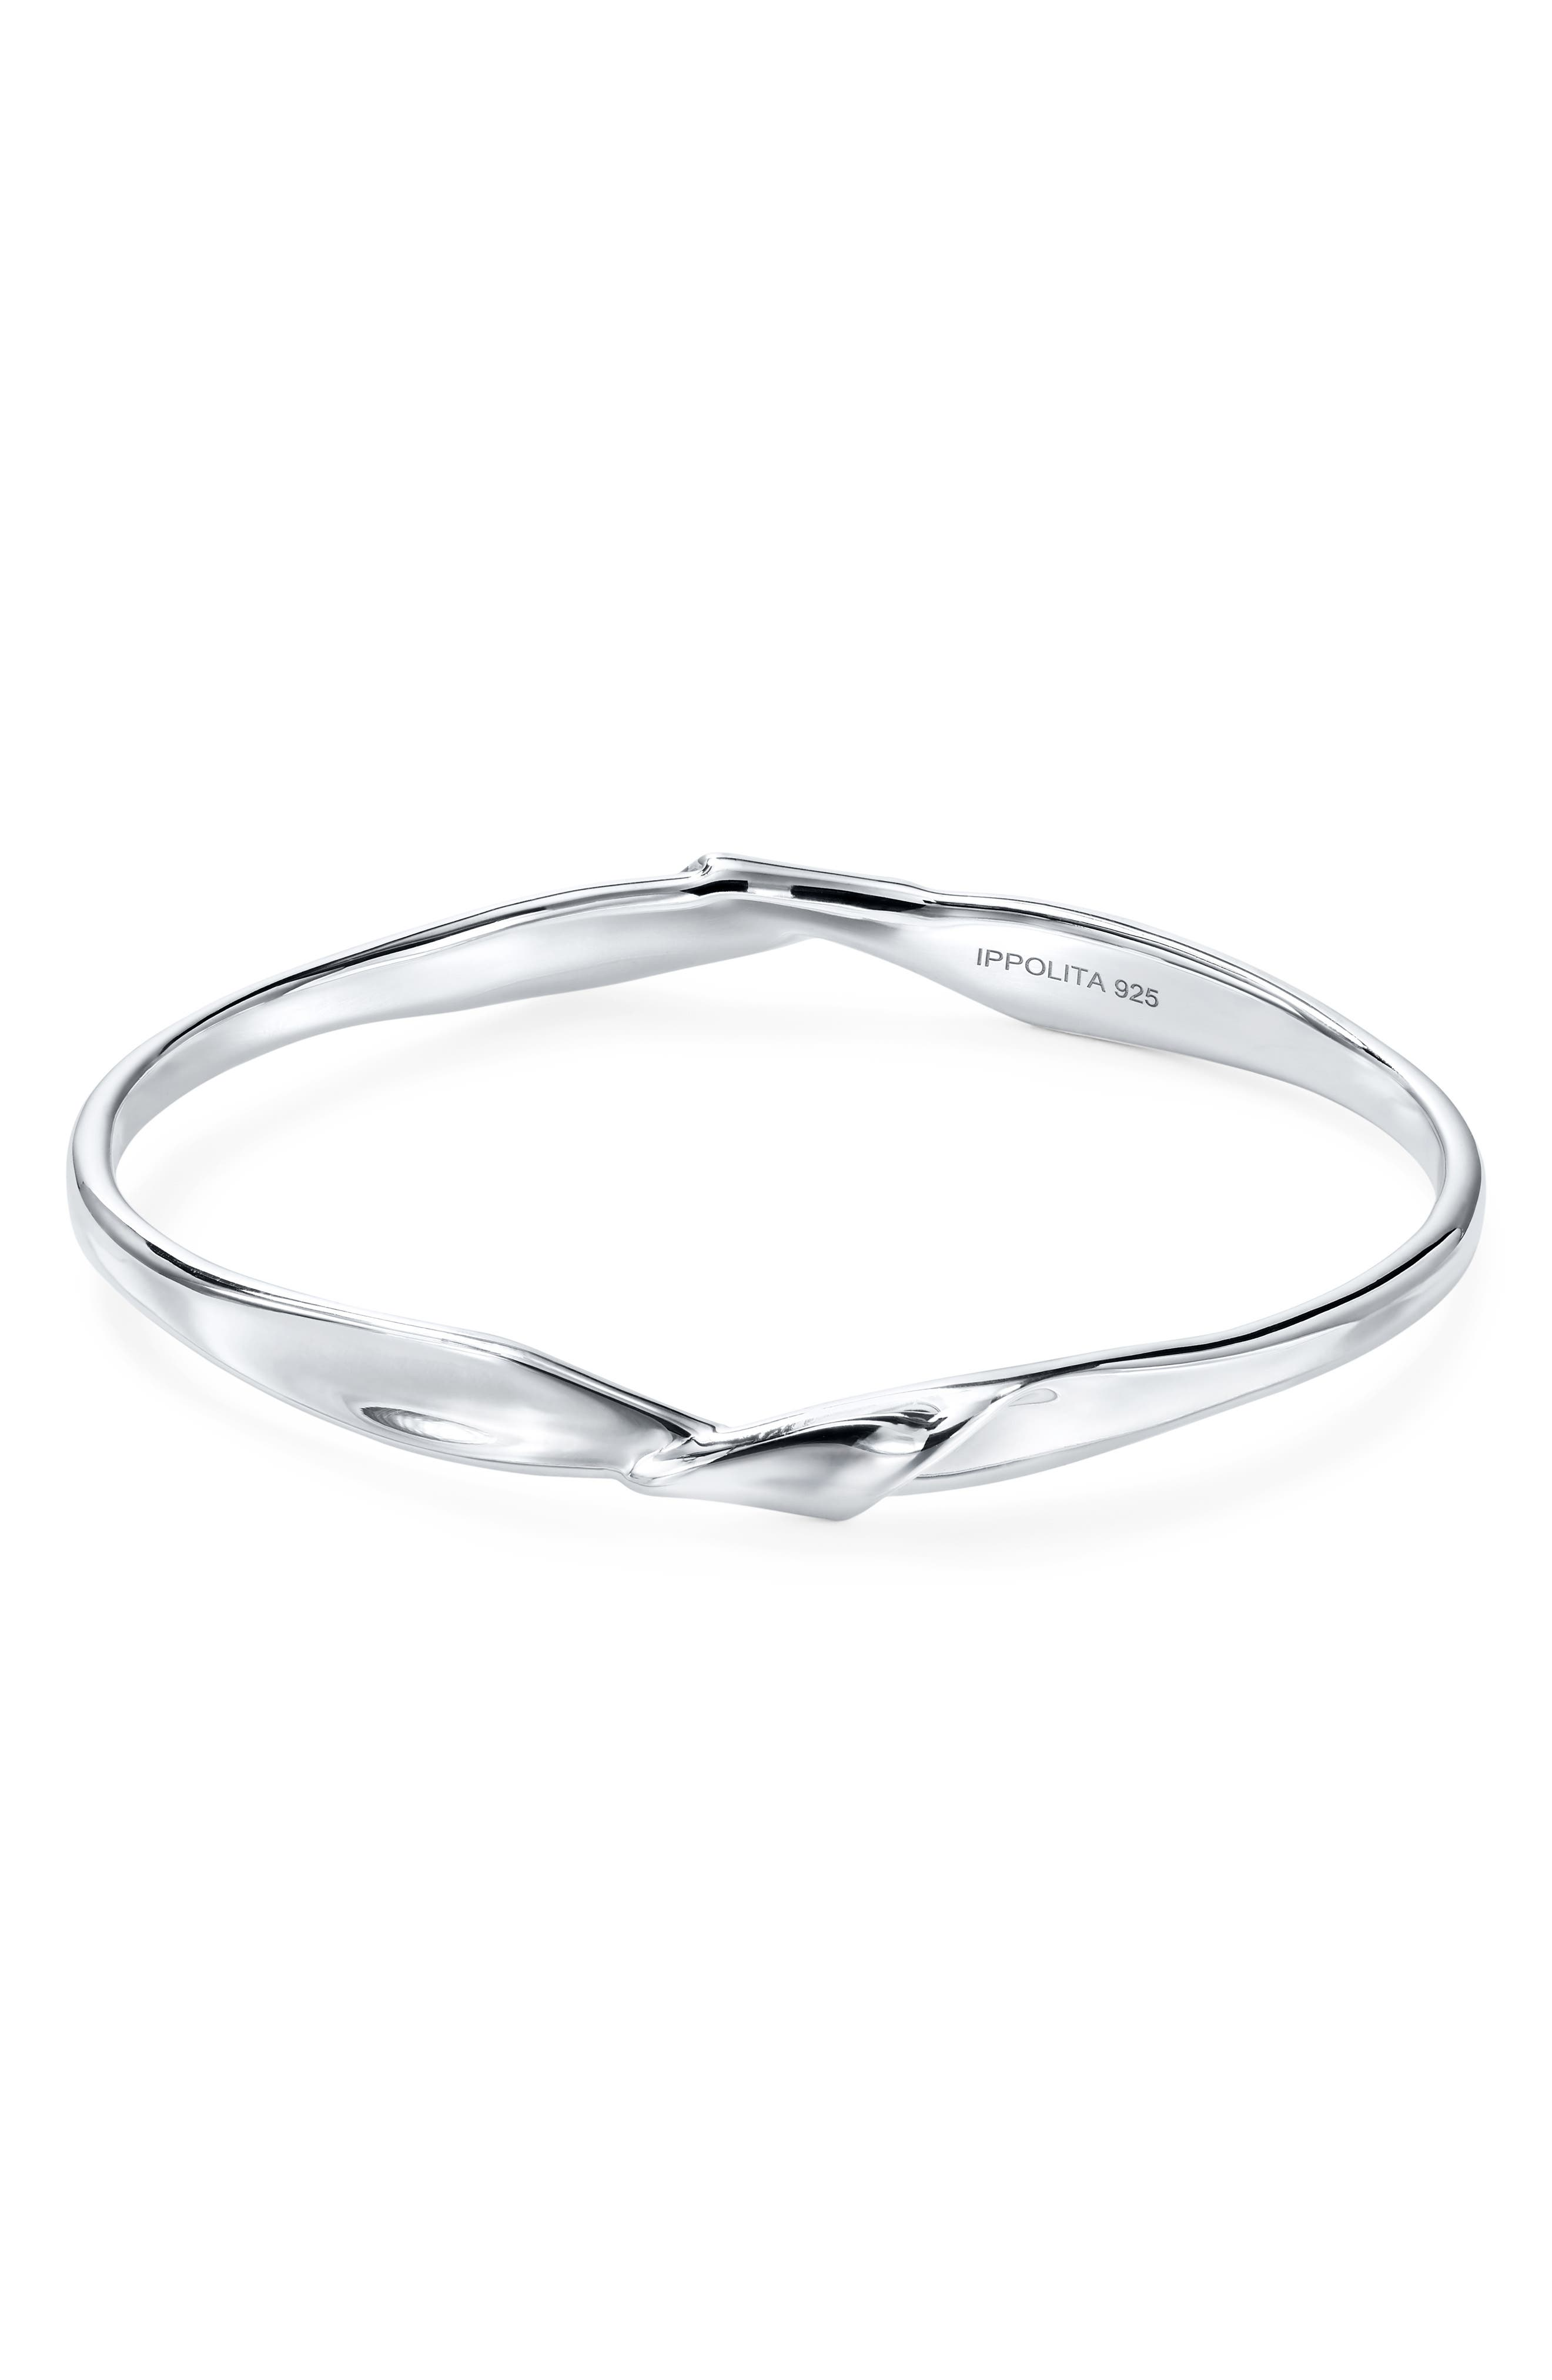 IPPOLITA Classico Sterling Silver Twisted Ribbon Bangle Bracelet